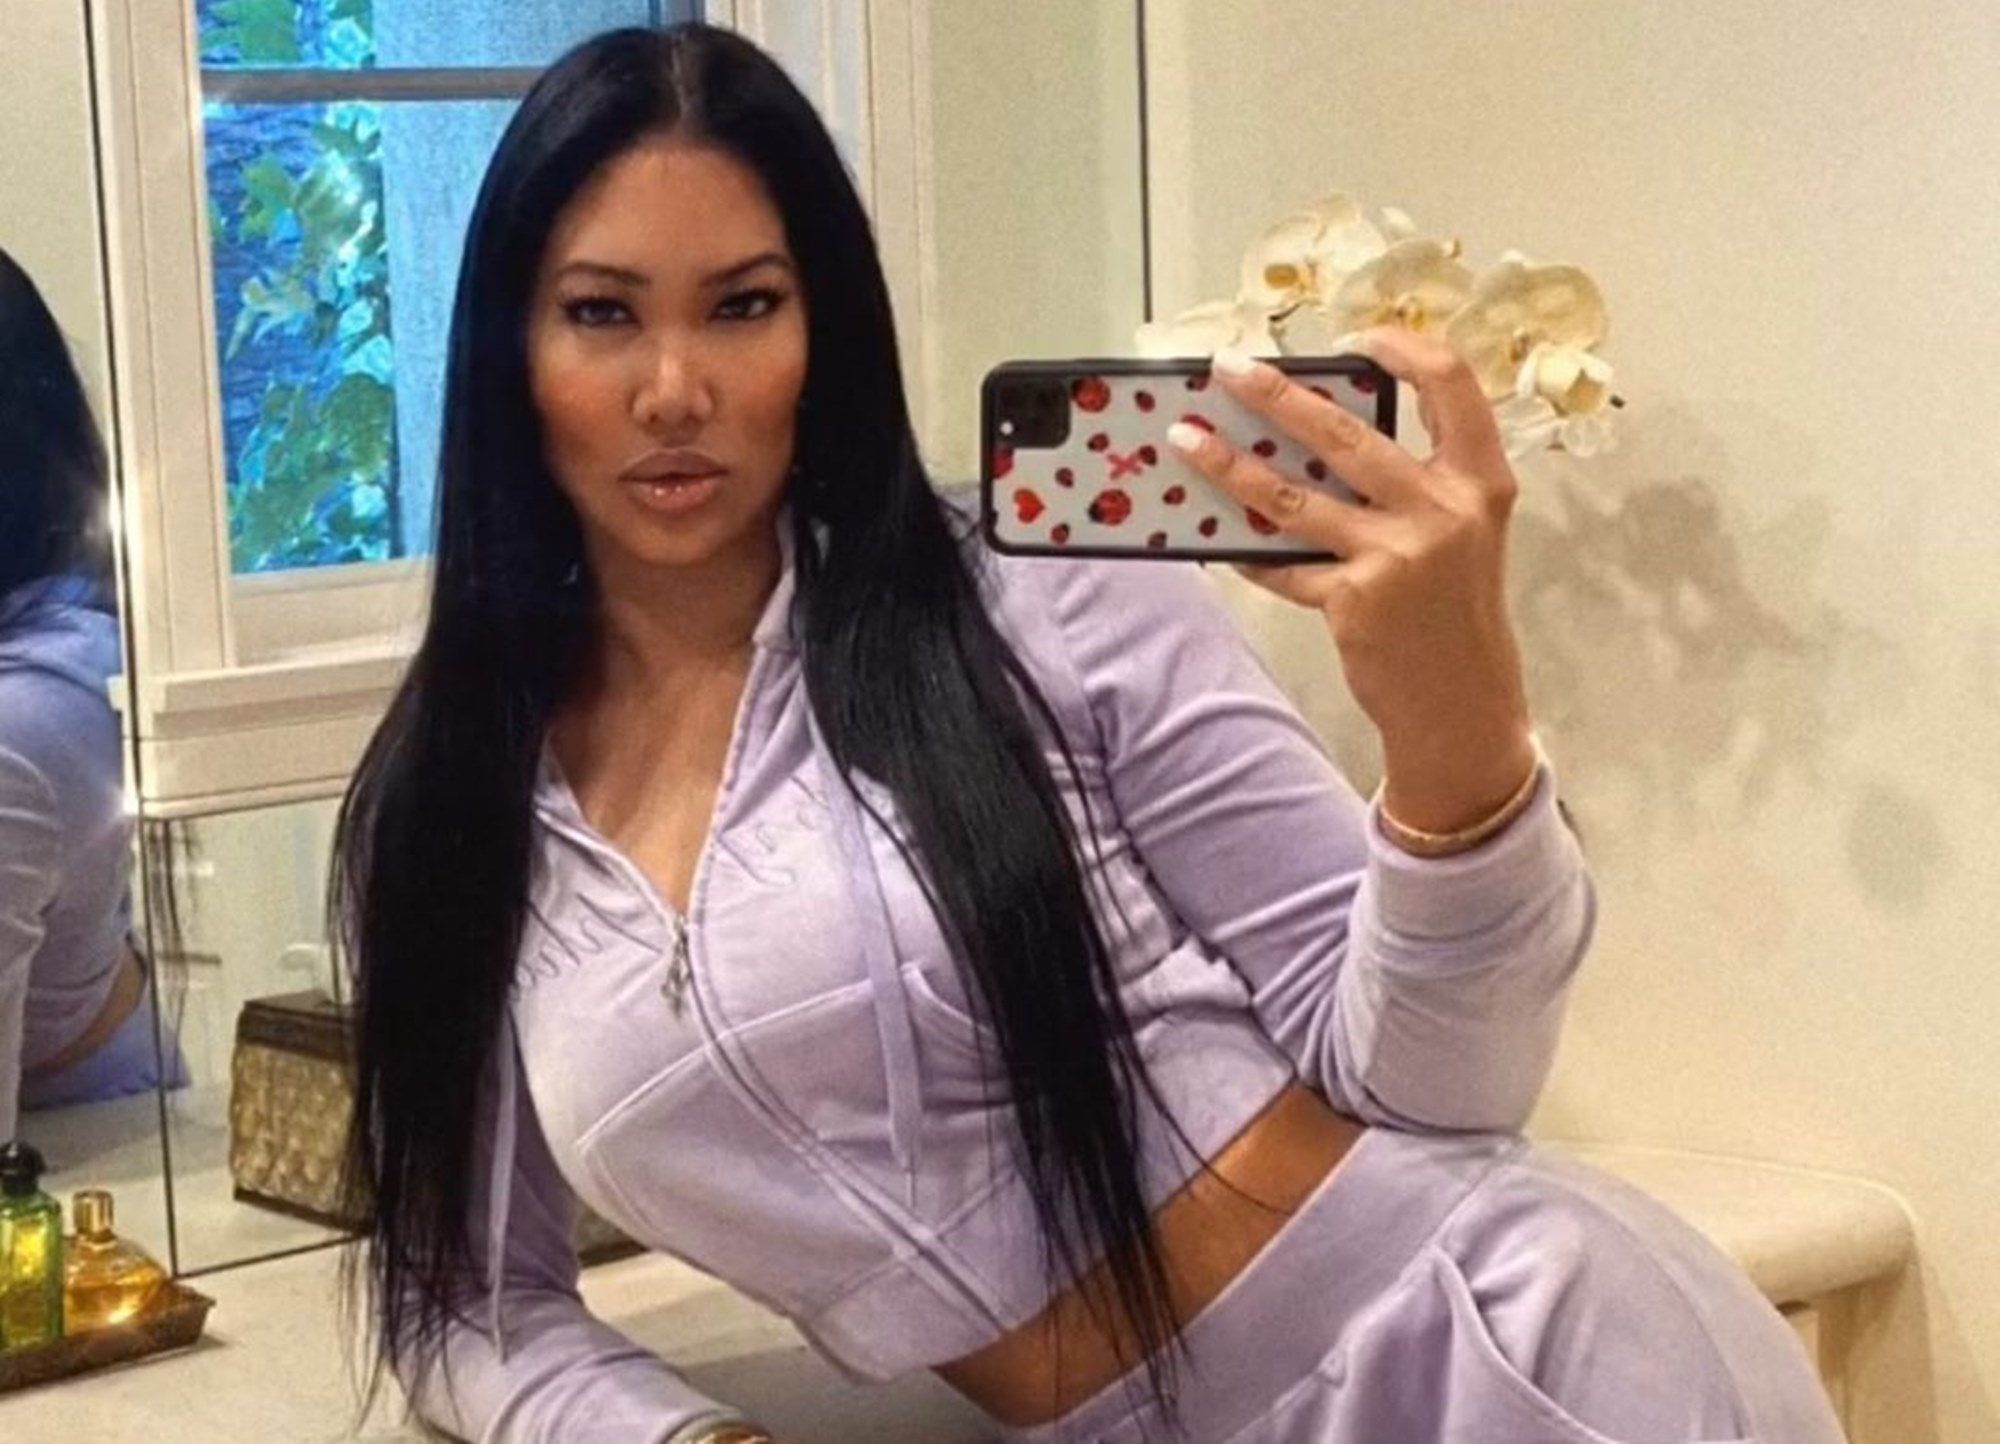 Kimora Lee Simmons Russell Relationship Started At 17